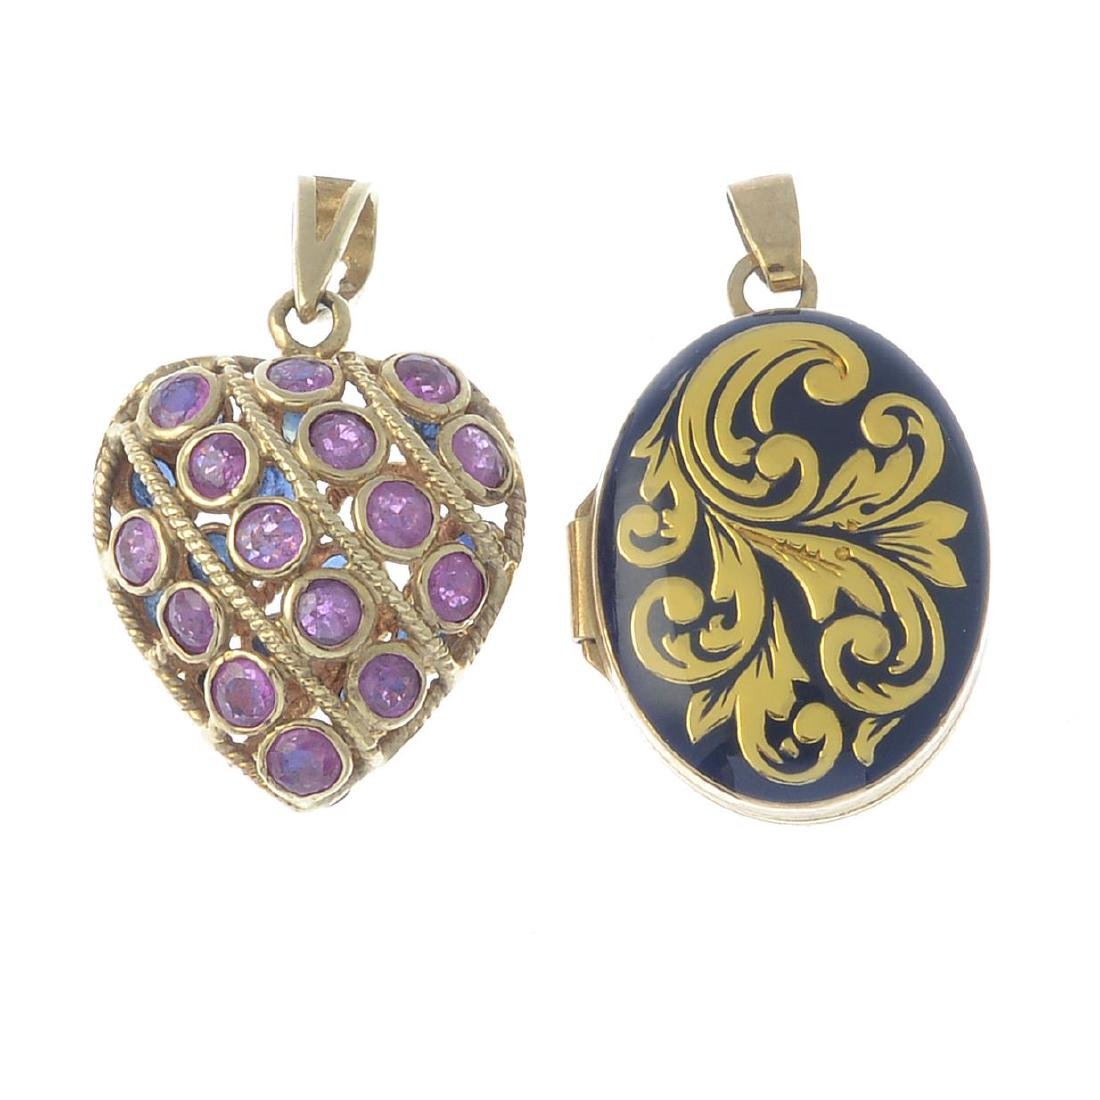 Two 9ct gold gem-set rings and two pendants. To include